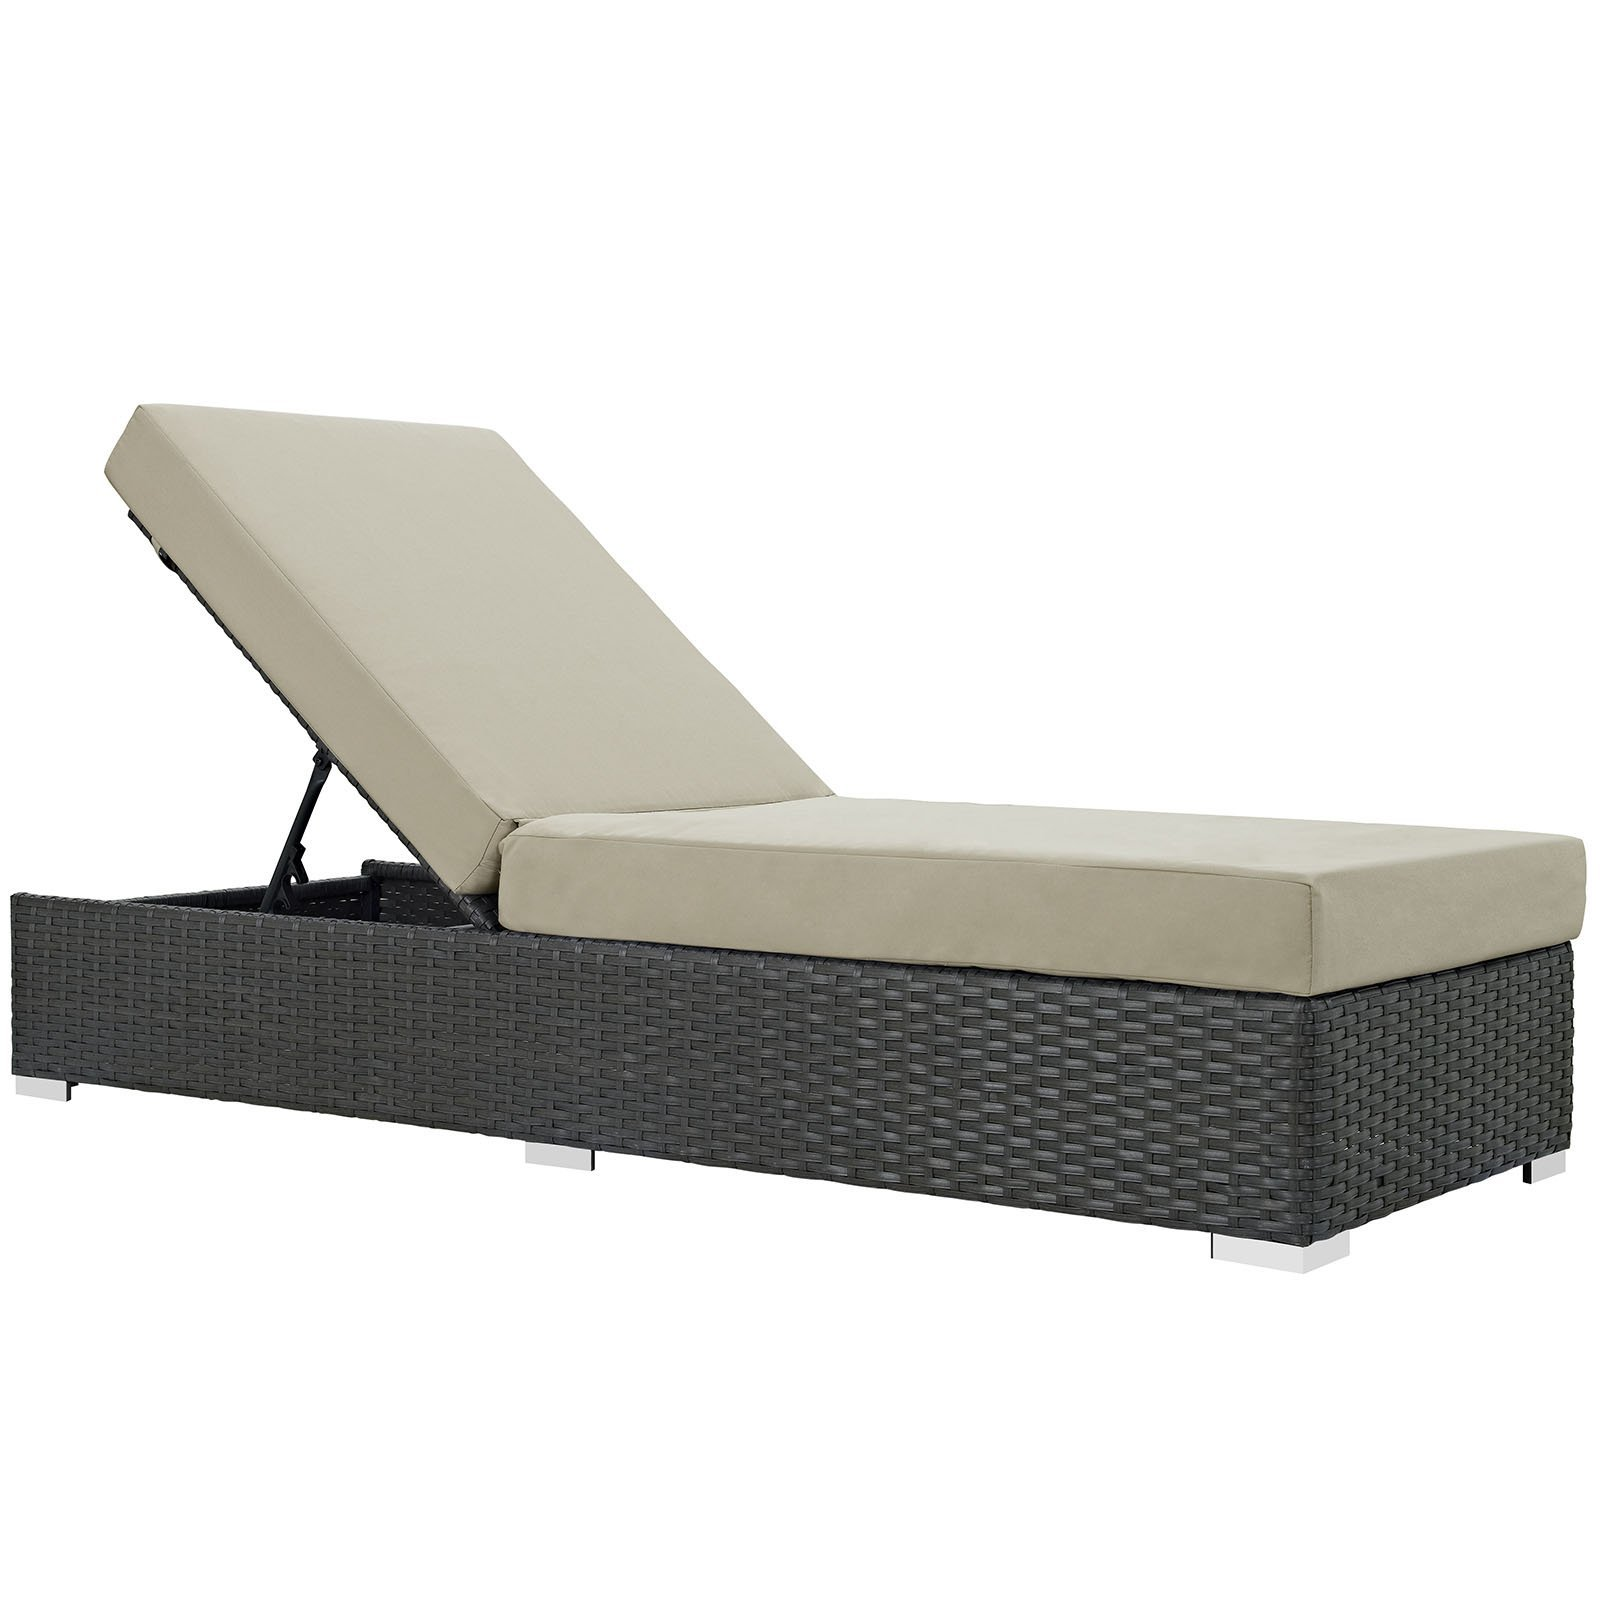 Sojourn Outdoor Patio Sunbrella® Chaise Lounge Canvas Antique Beige EEI-1862-C